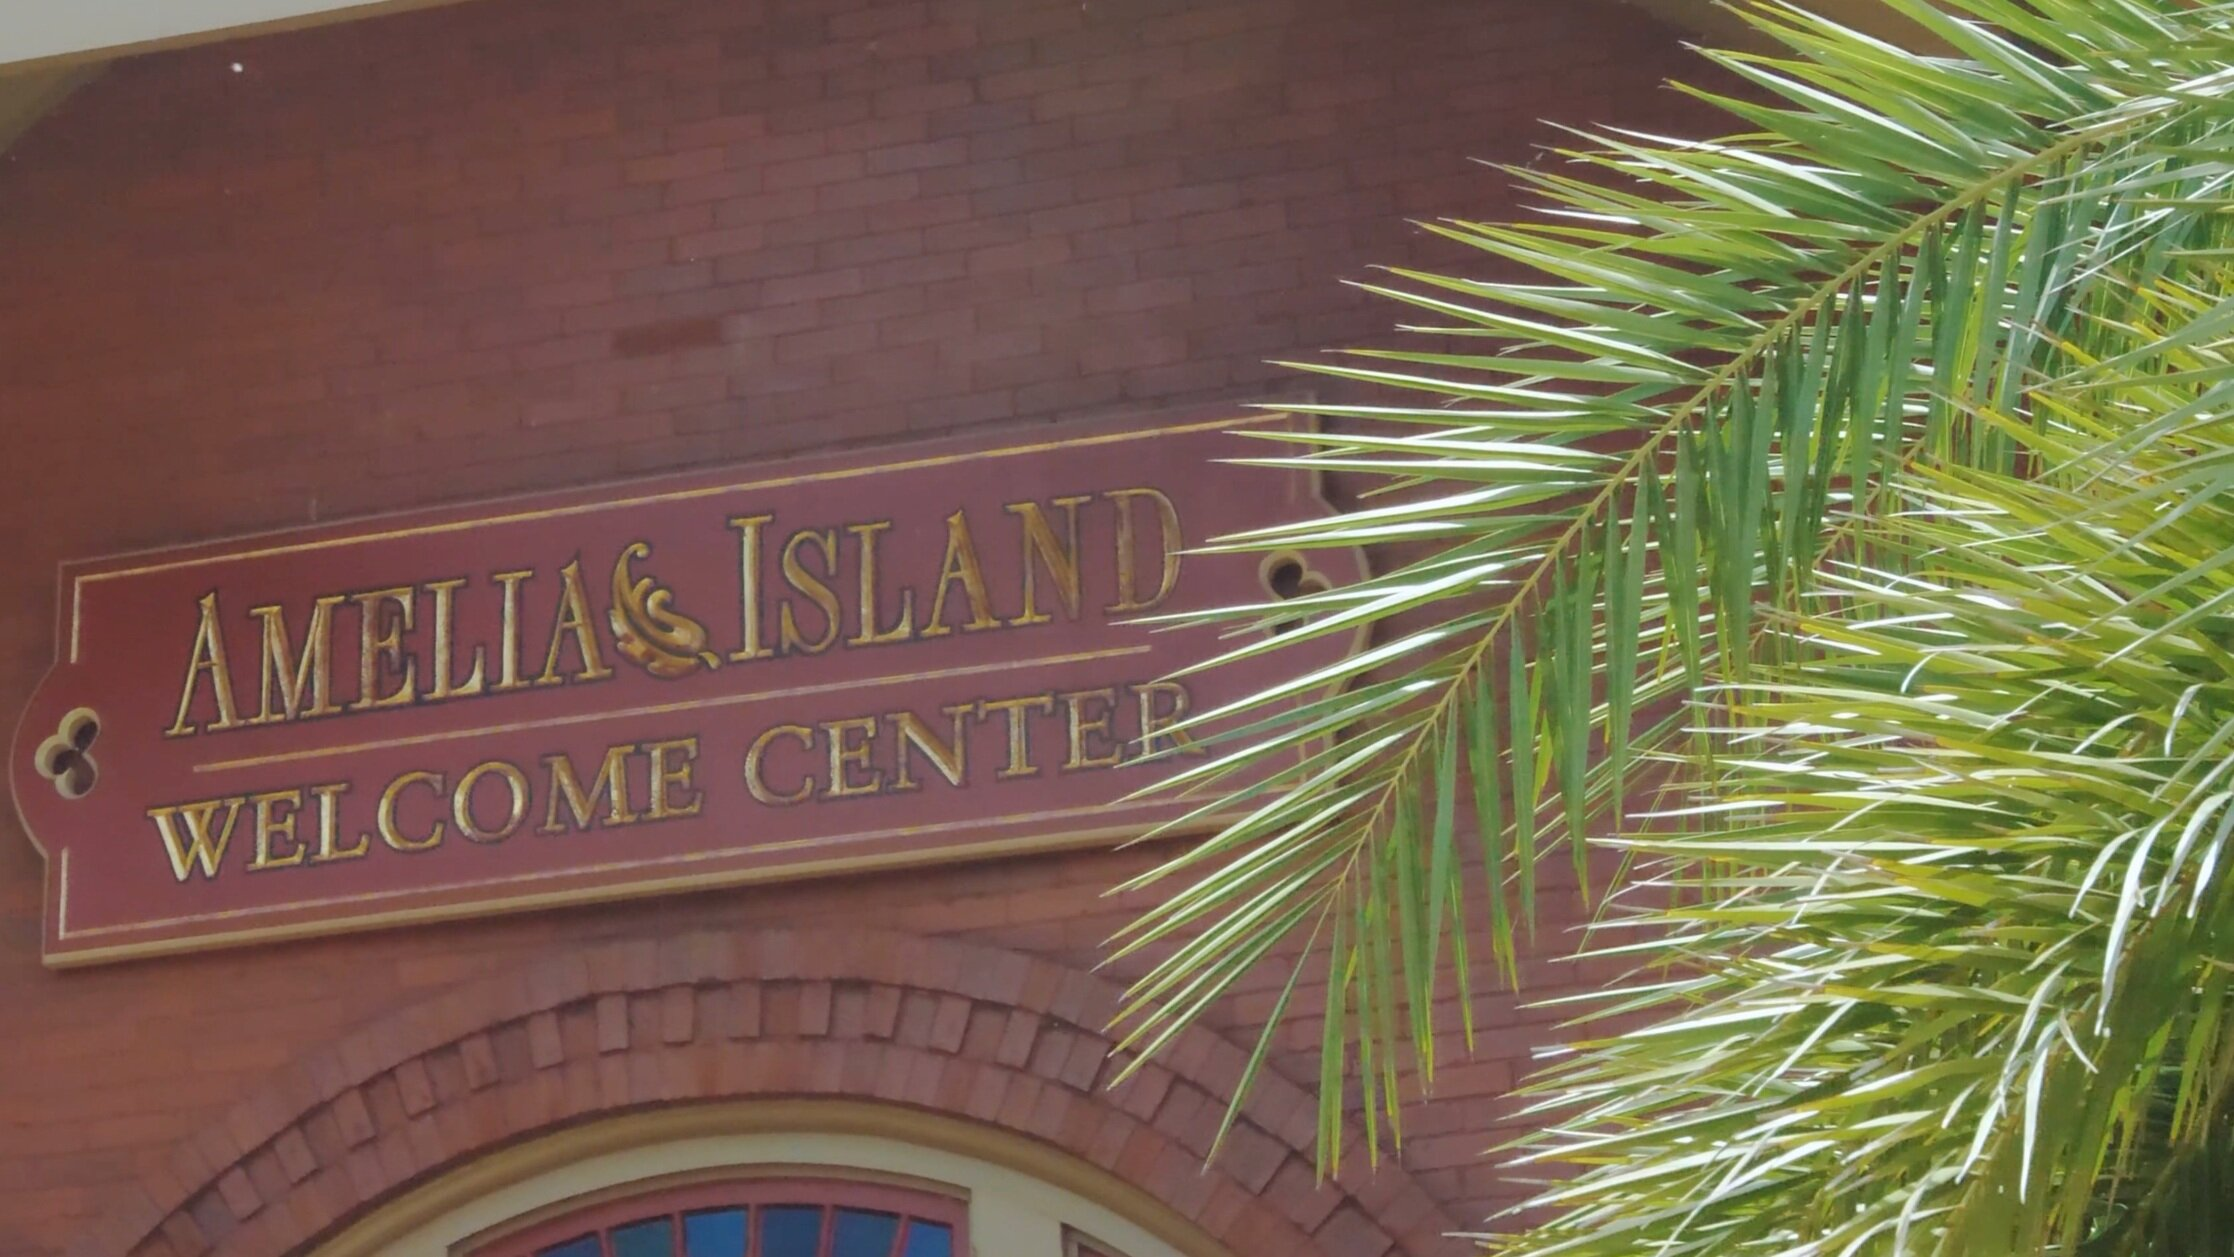 Wander Amelia Island - Featuring 13 miles of pristine beaches, charming tree-lined streets, and an idyllic 50-block historic district, Amelia Island is the of the darling of the coastal south.View on Channel